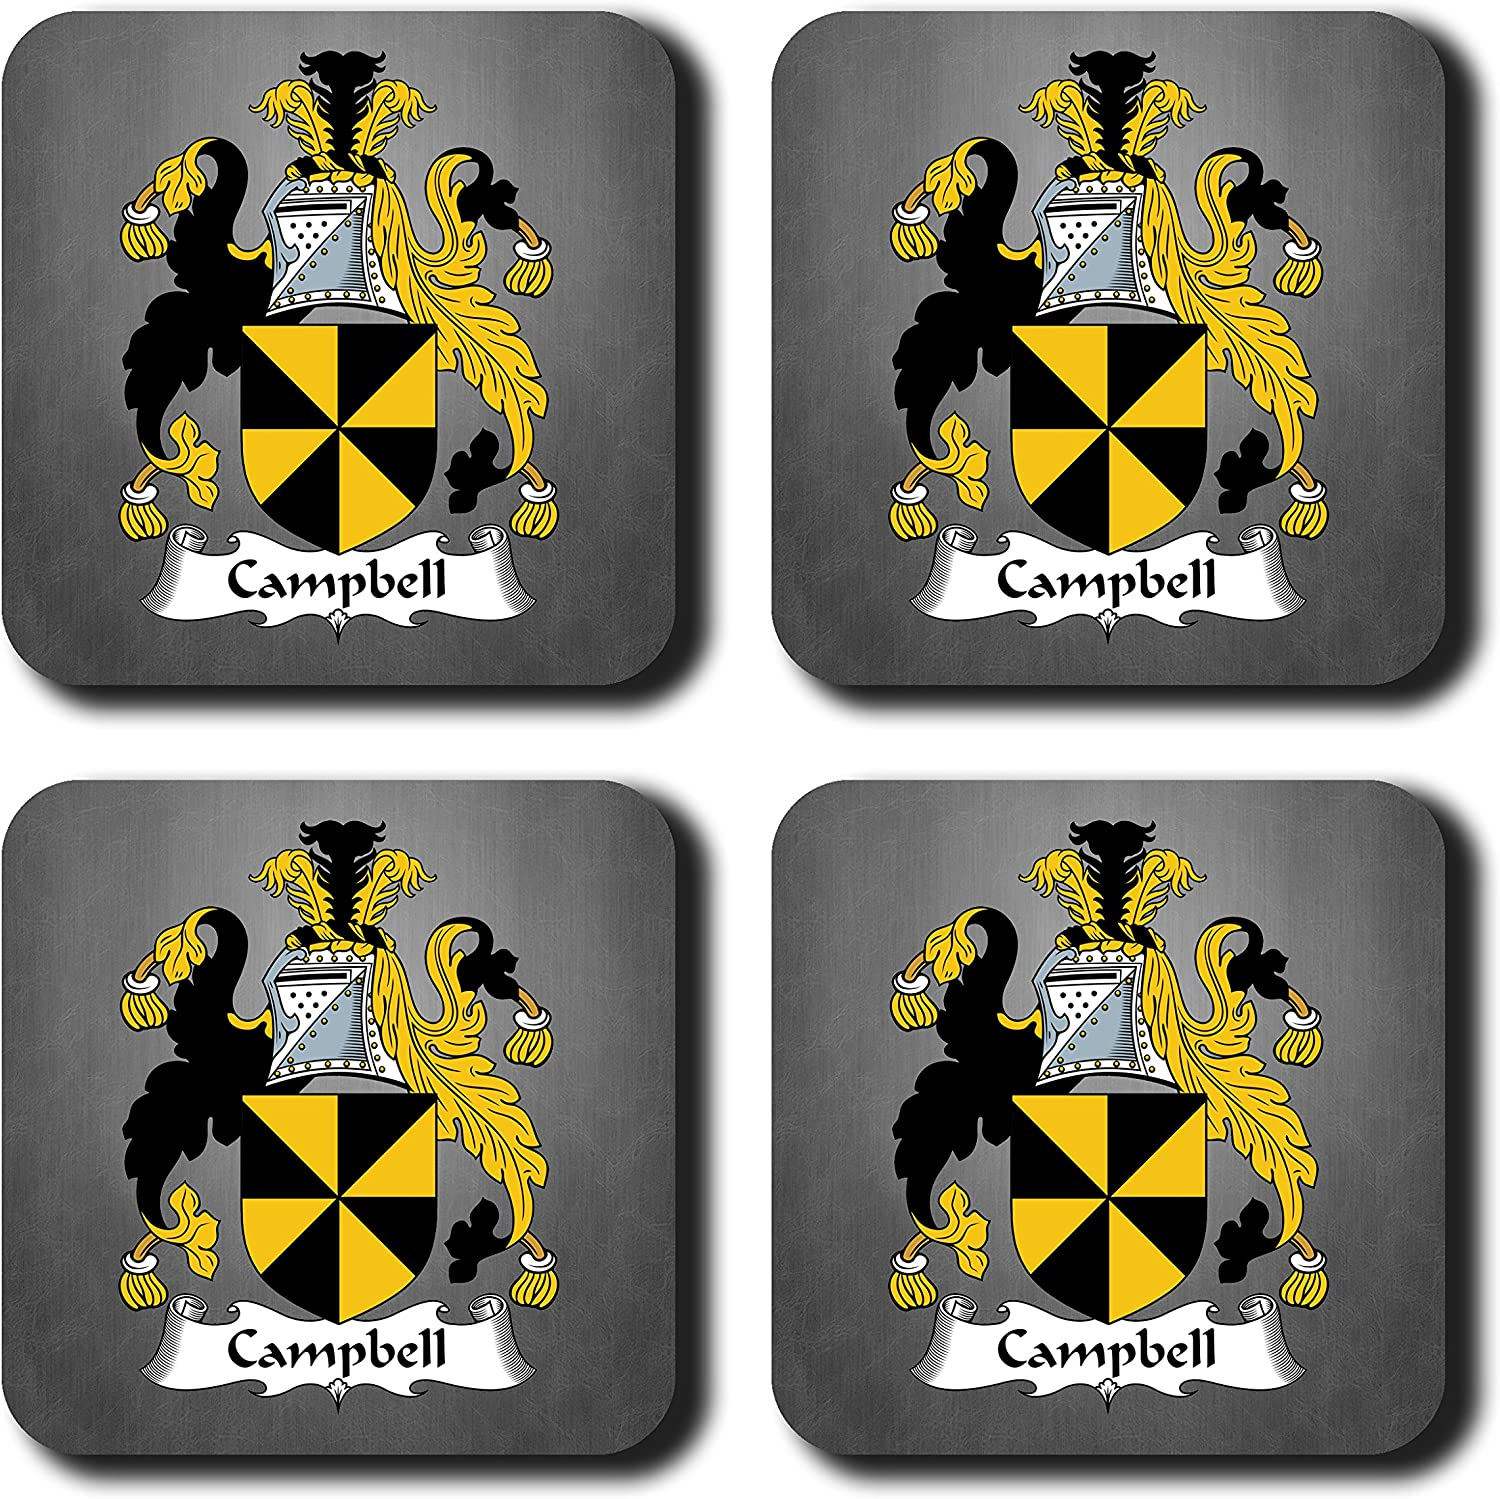 Campbell Coat of Arms/Family Crest Coaster Set, by Carpe Diem Designs – Made in the U.S.A.